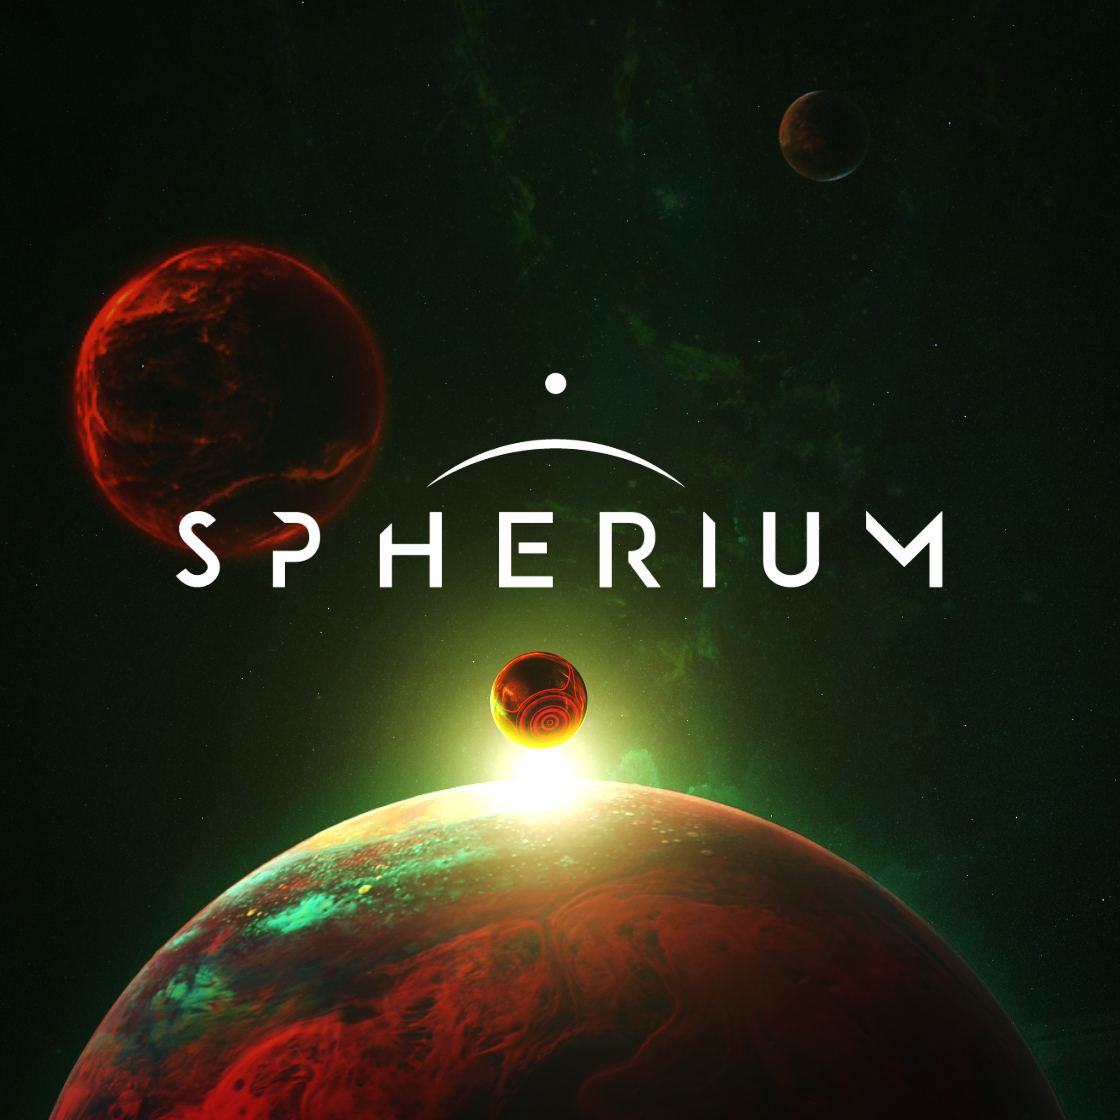 SPHERIUM 1